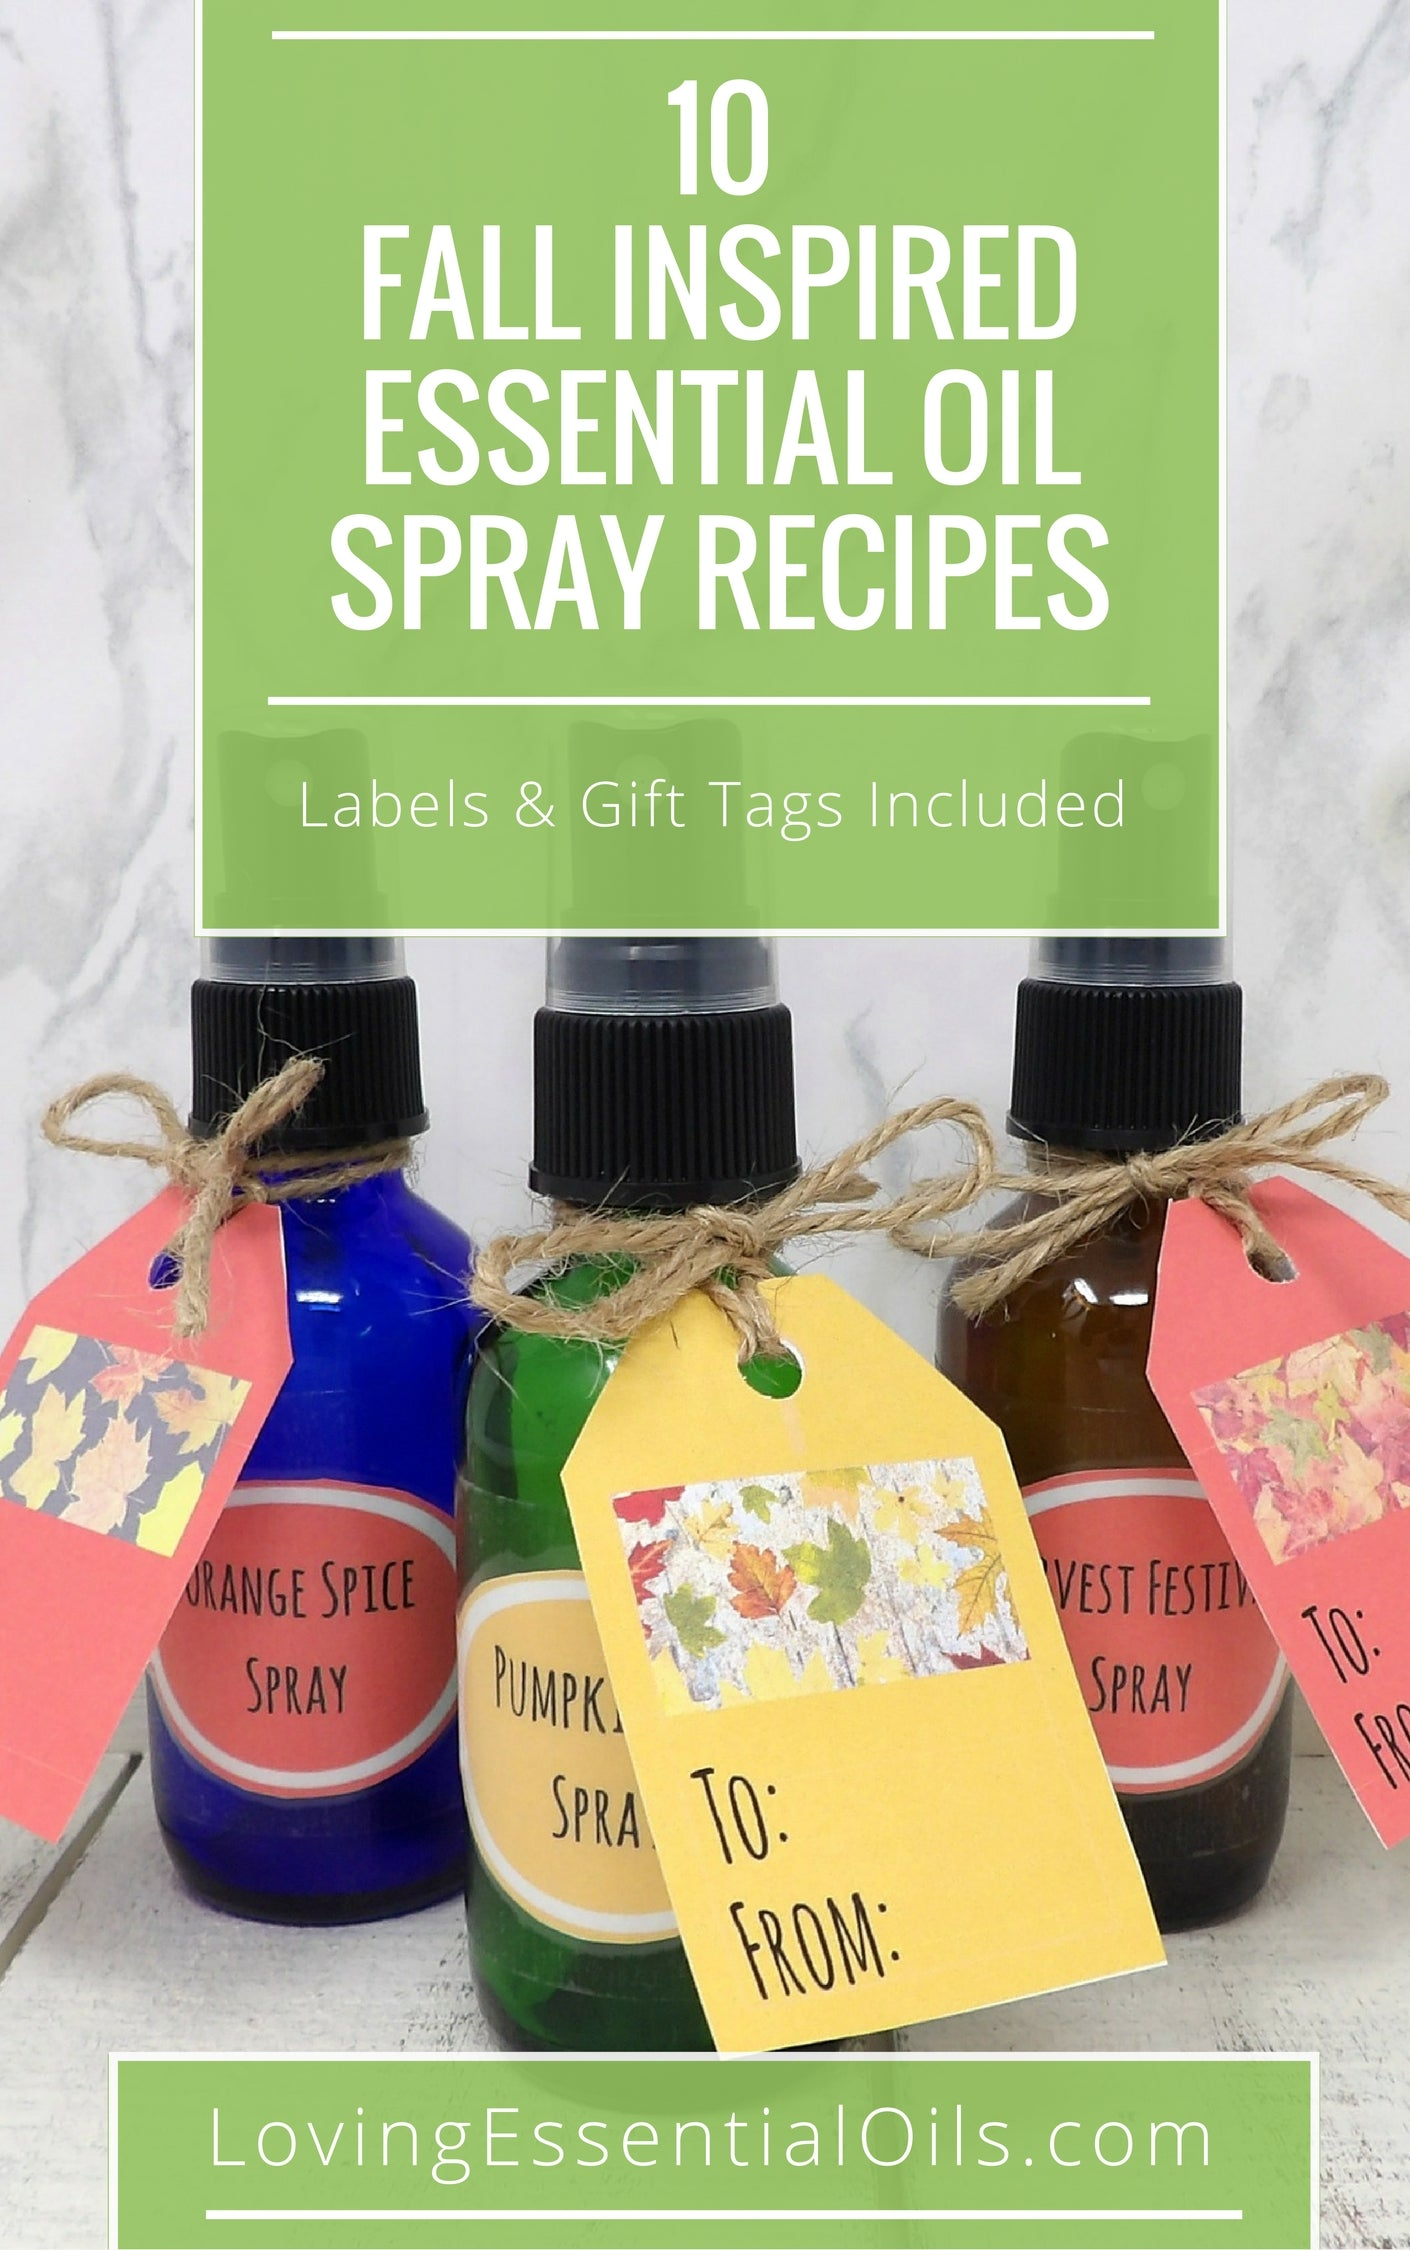 10 Fall Inspired Essential Oil Spray Recipes